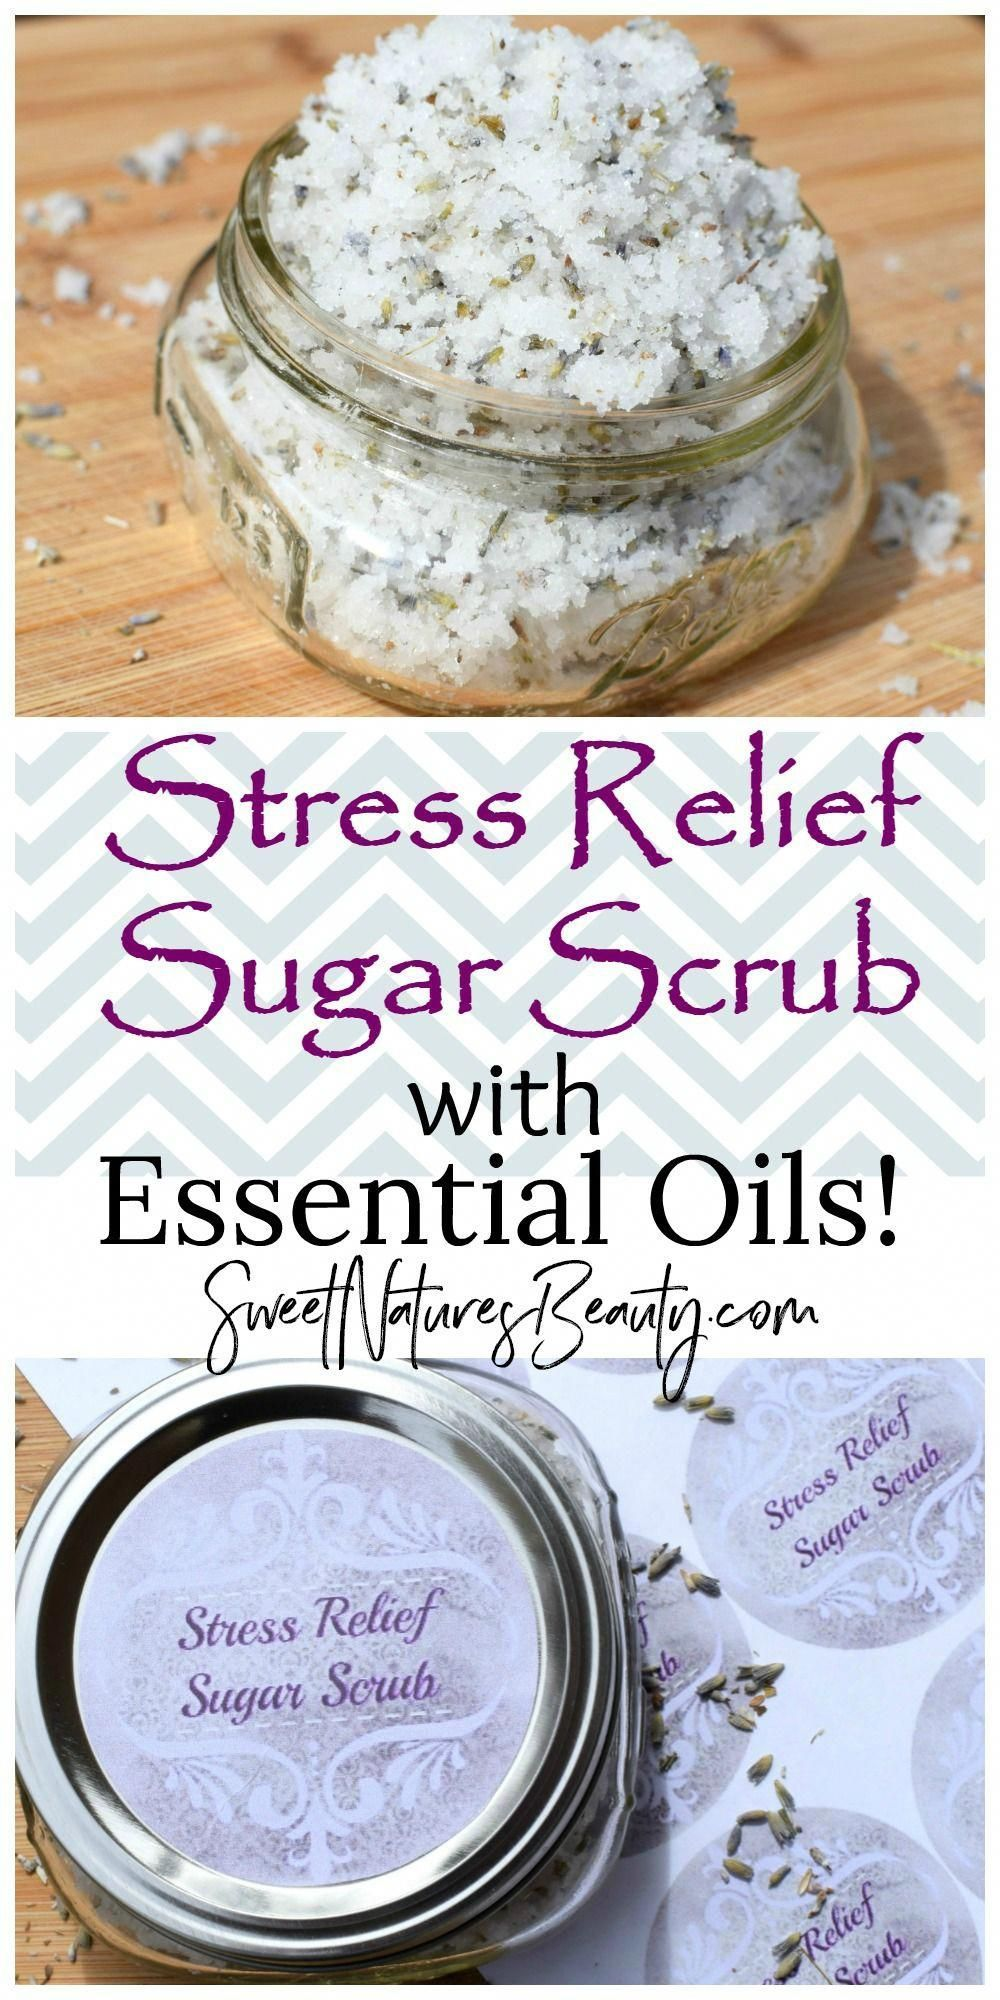 #beautytipsandtricks #ingredients #essential #skincare #natural #relief #beauty #stress #scrub #using #sugar #this #oils #make #allMake this Stress Relief Sugar Scrub using all natural ingredients and essential oils for natural beauty and natural skincare!Make this Stress Relief Sugar Scrub using all natural ingredients and essential oils for natural beauty and natural skincare!